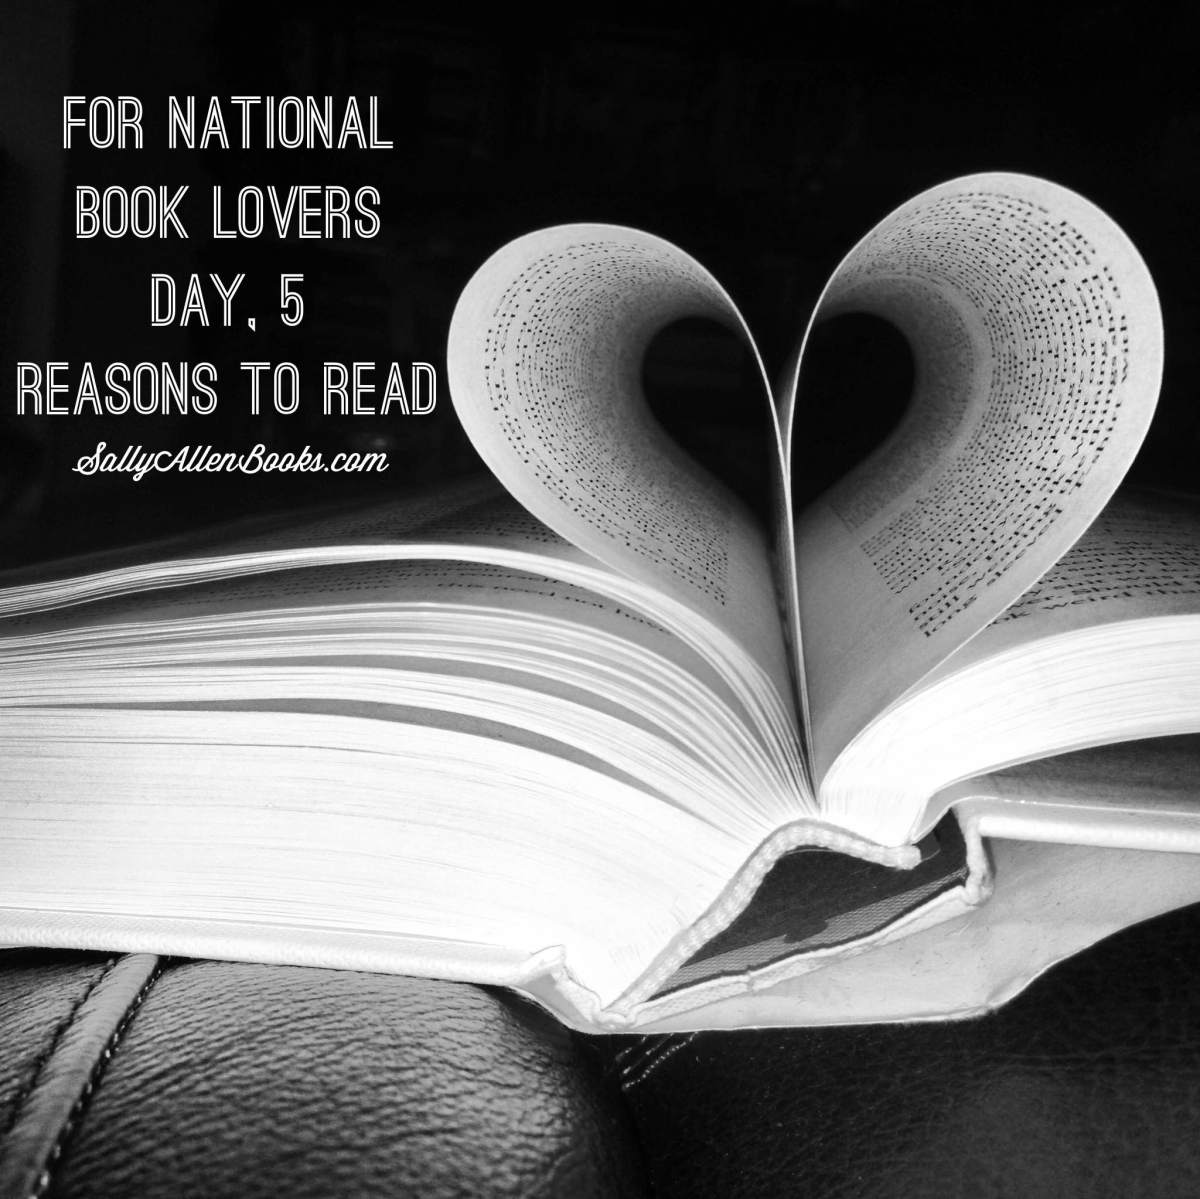 For National Book Lovers Day, 5 Reasons to Read